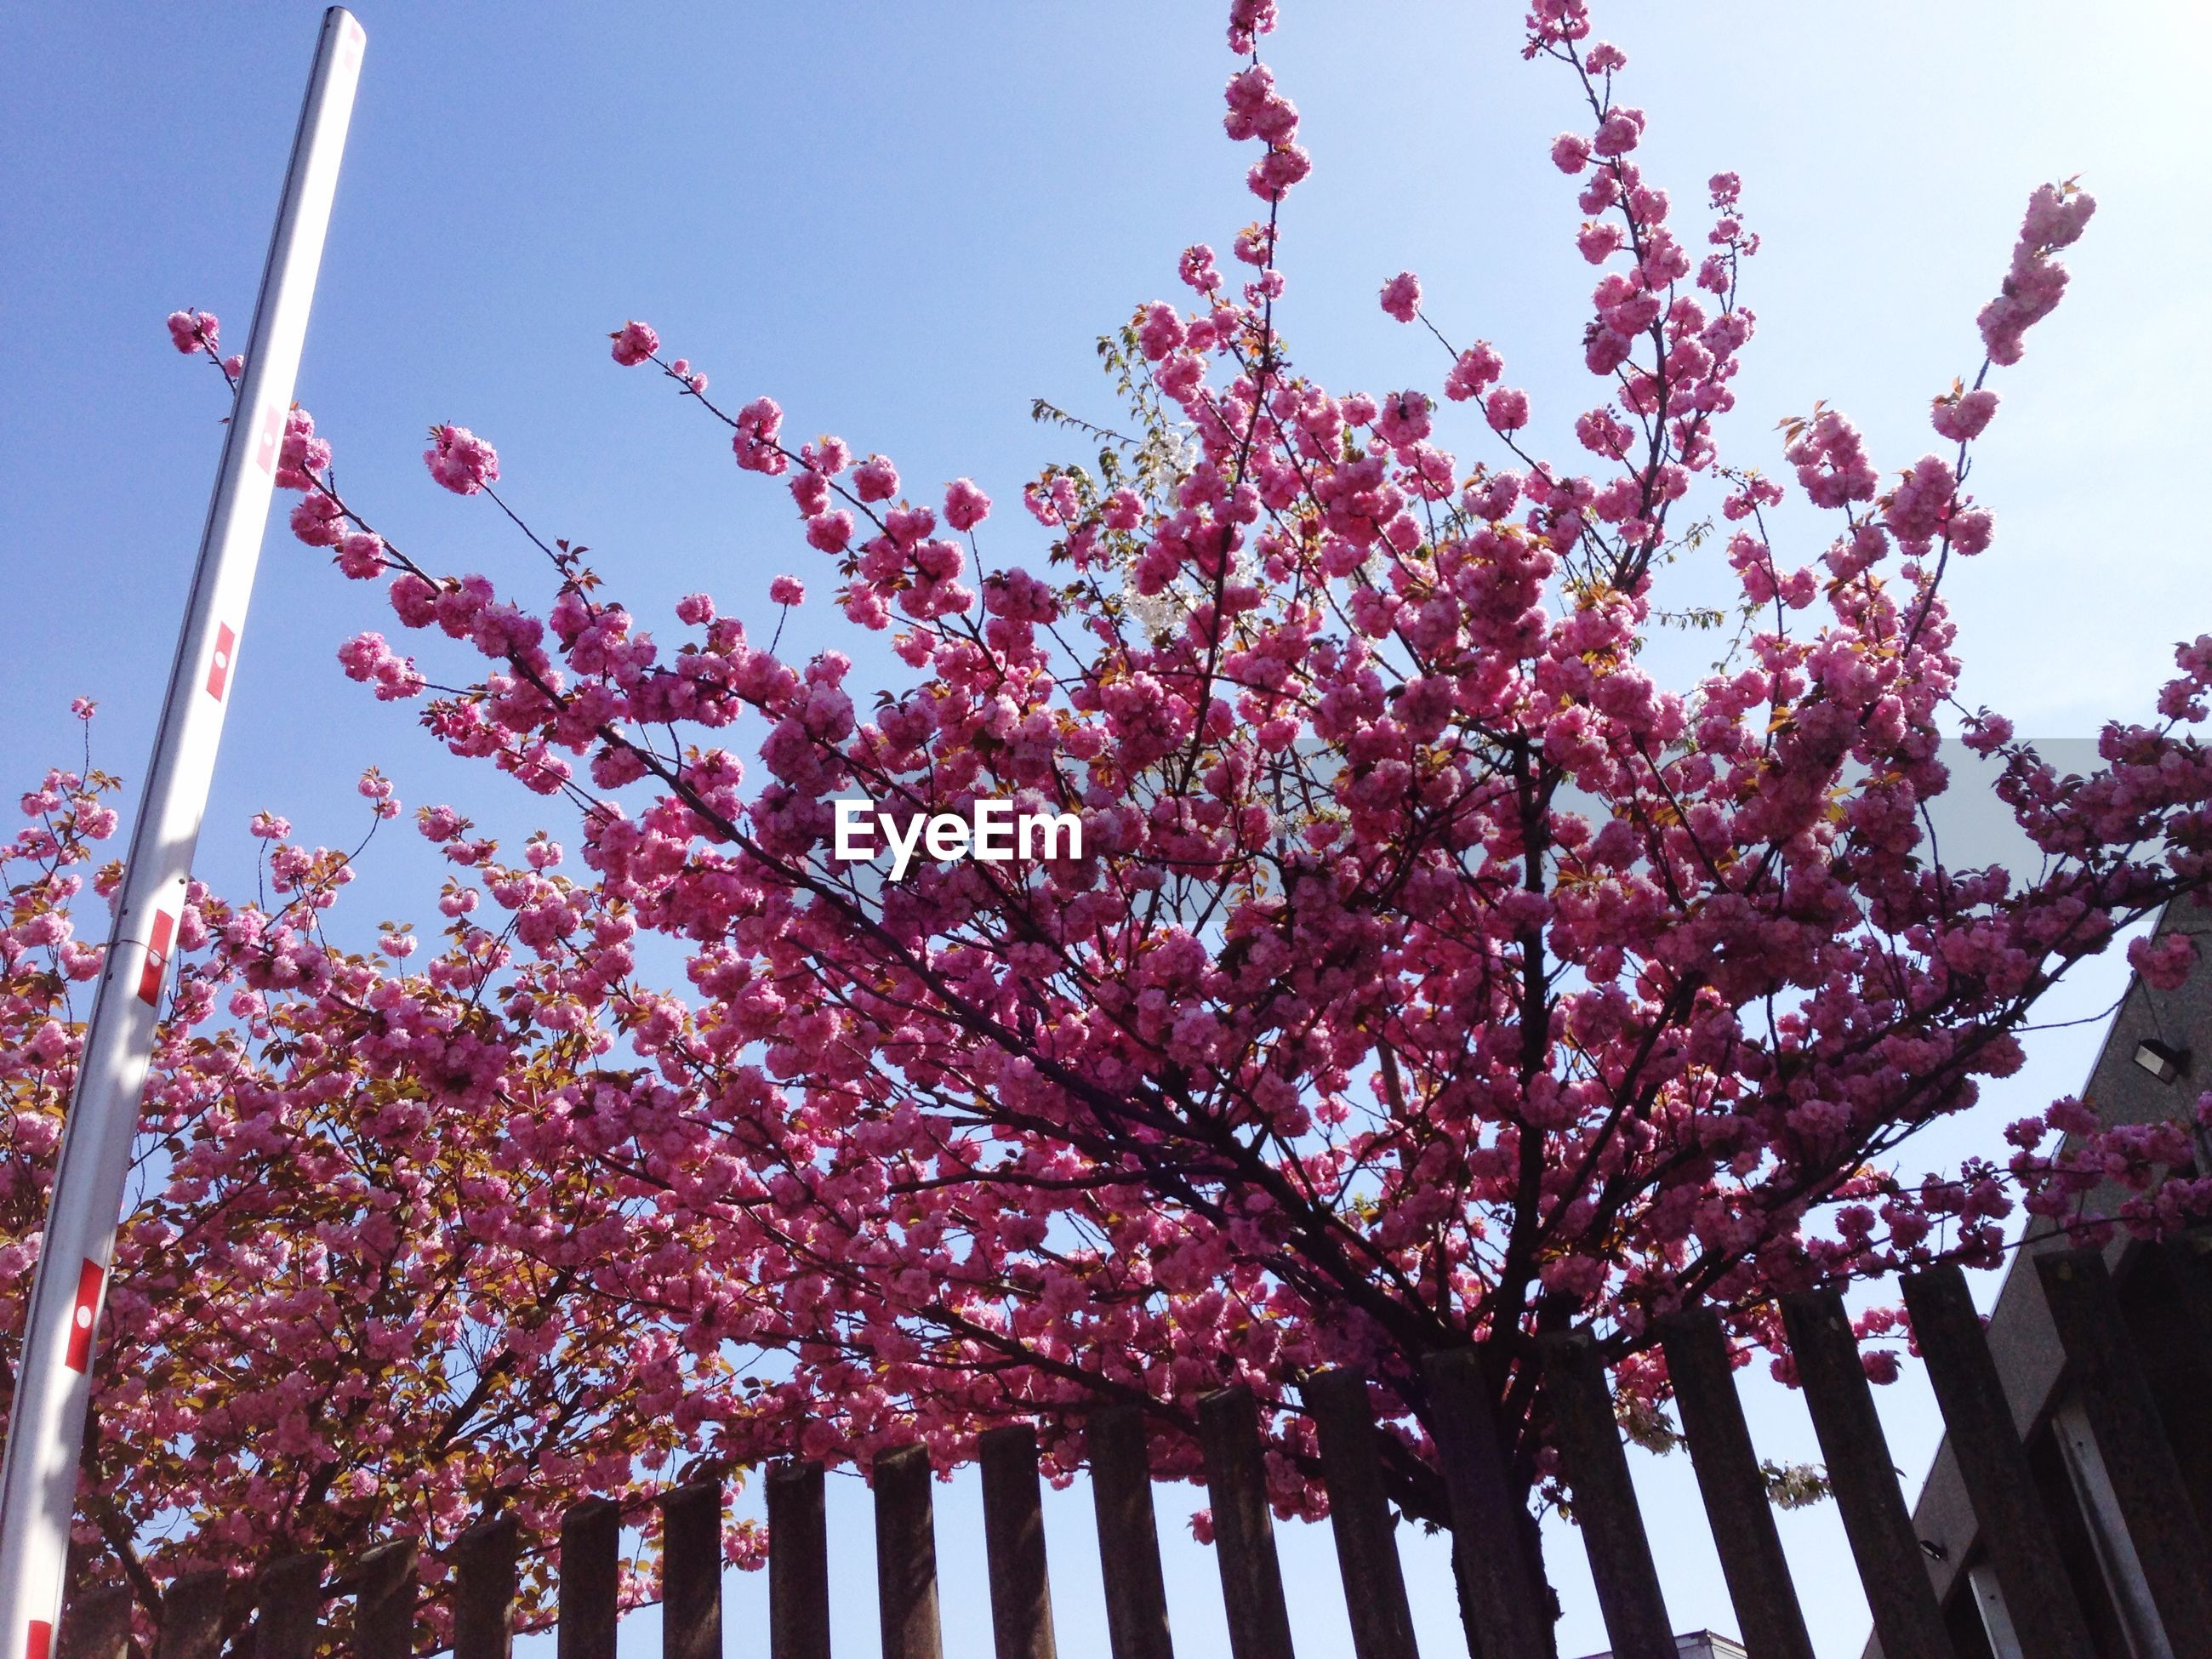 low angle view, tree, growth, sky, built structure, architecture, clear sky, branch, building exterior, flower, nature, day, outdoors, street light, no people, red, freshness, sunlight, beauty in nature, blossom